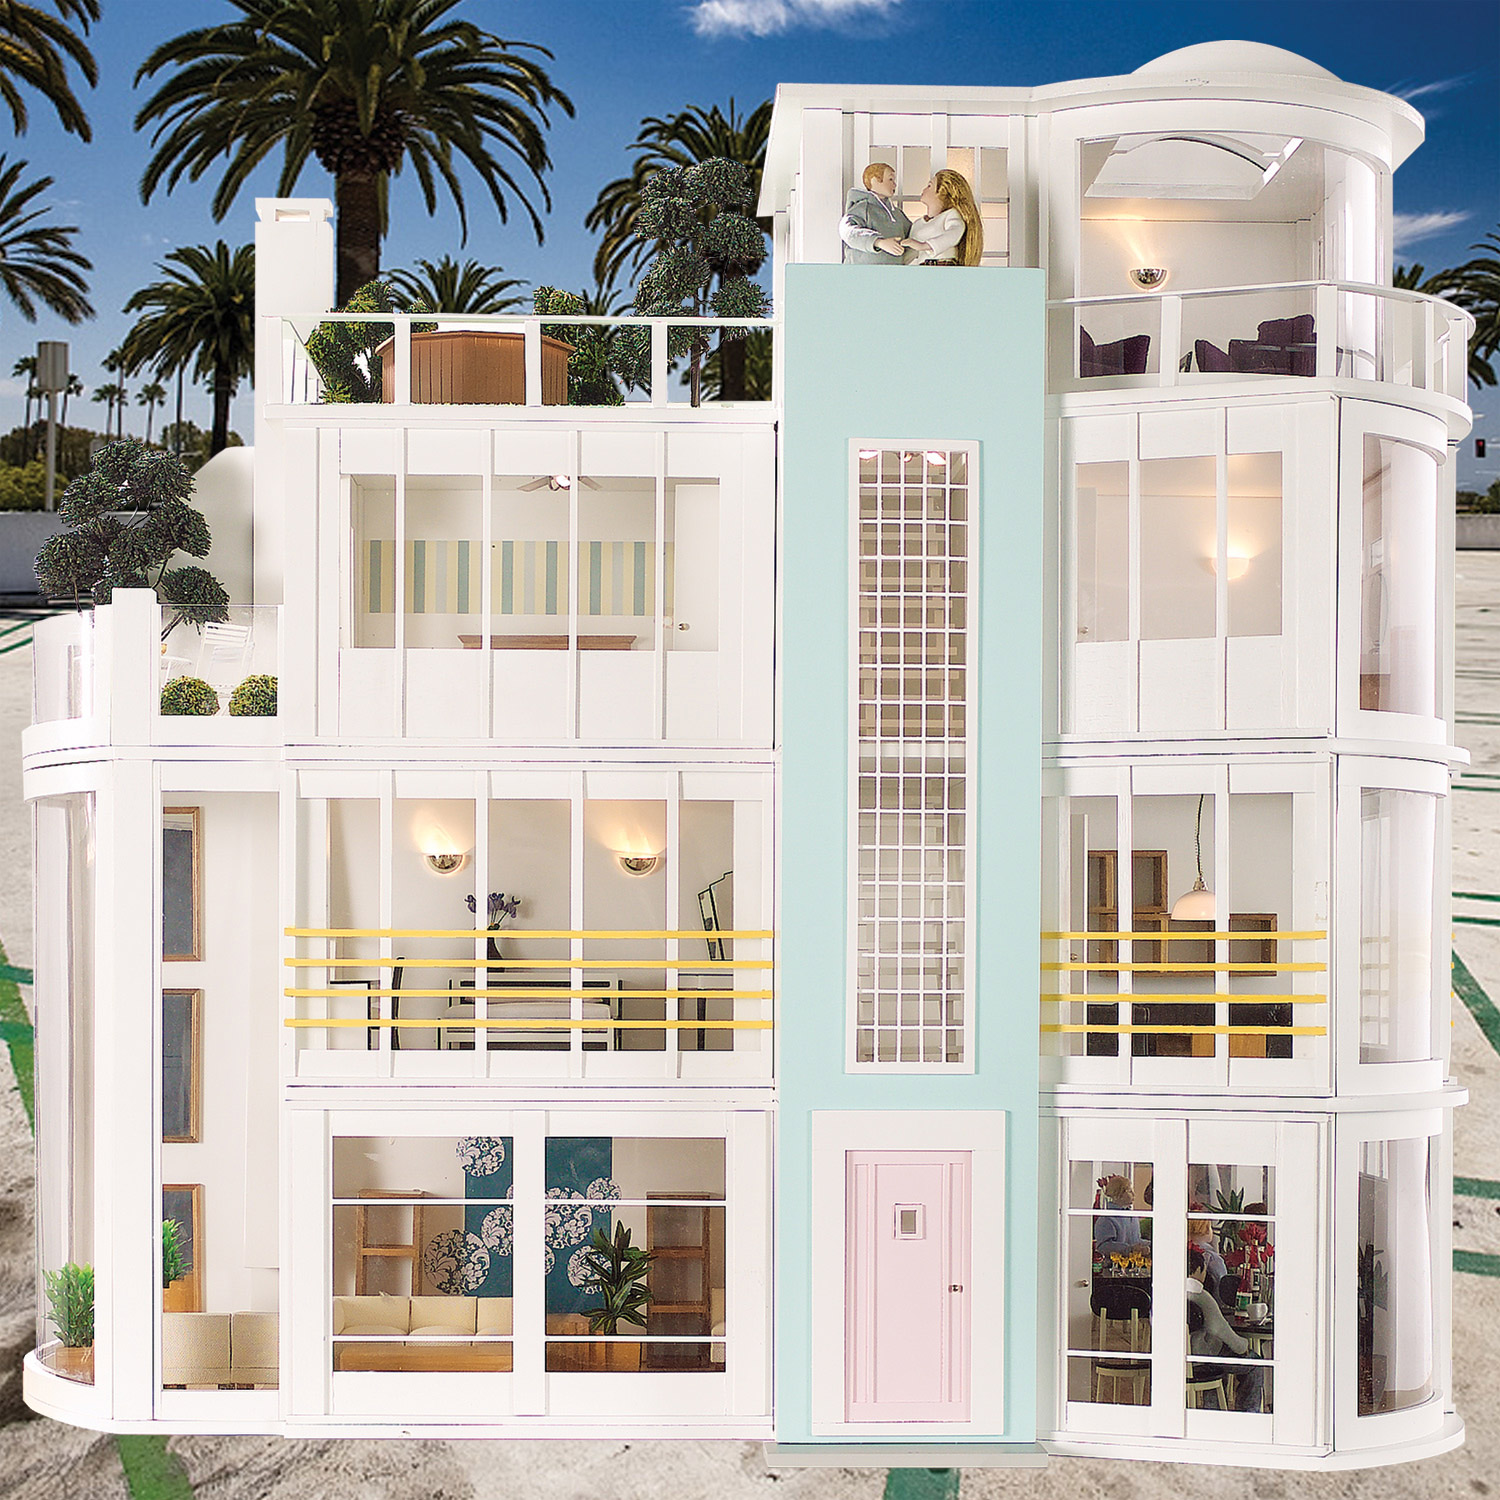 Barbie House Design Malibu Beach House 480 Not Your Grandma 39s Dollhouse